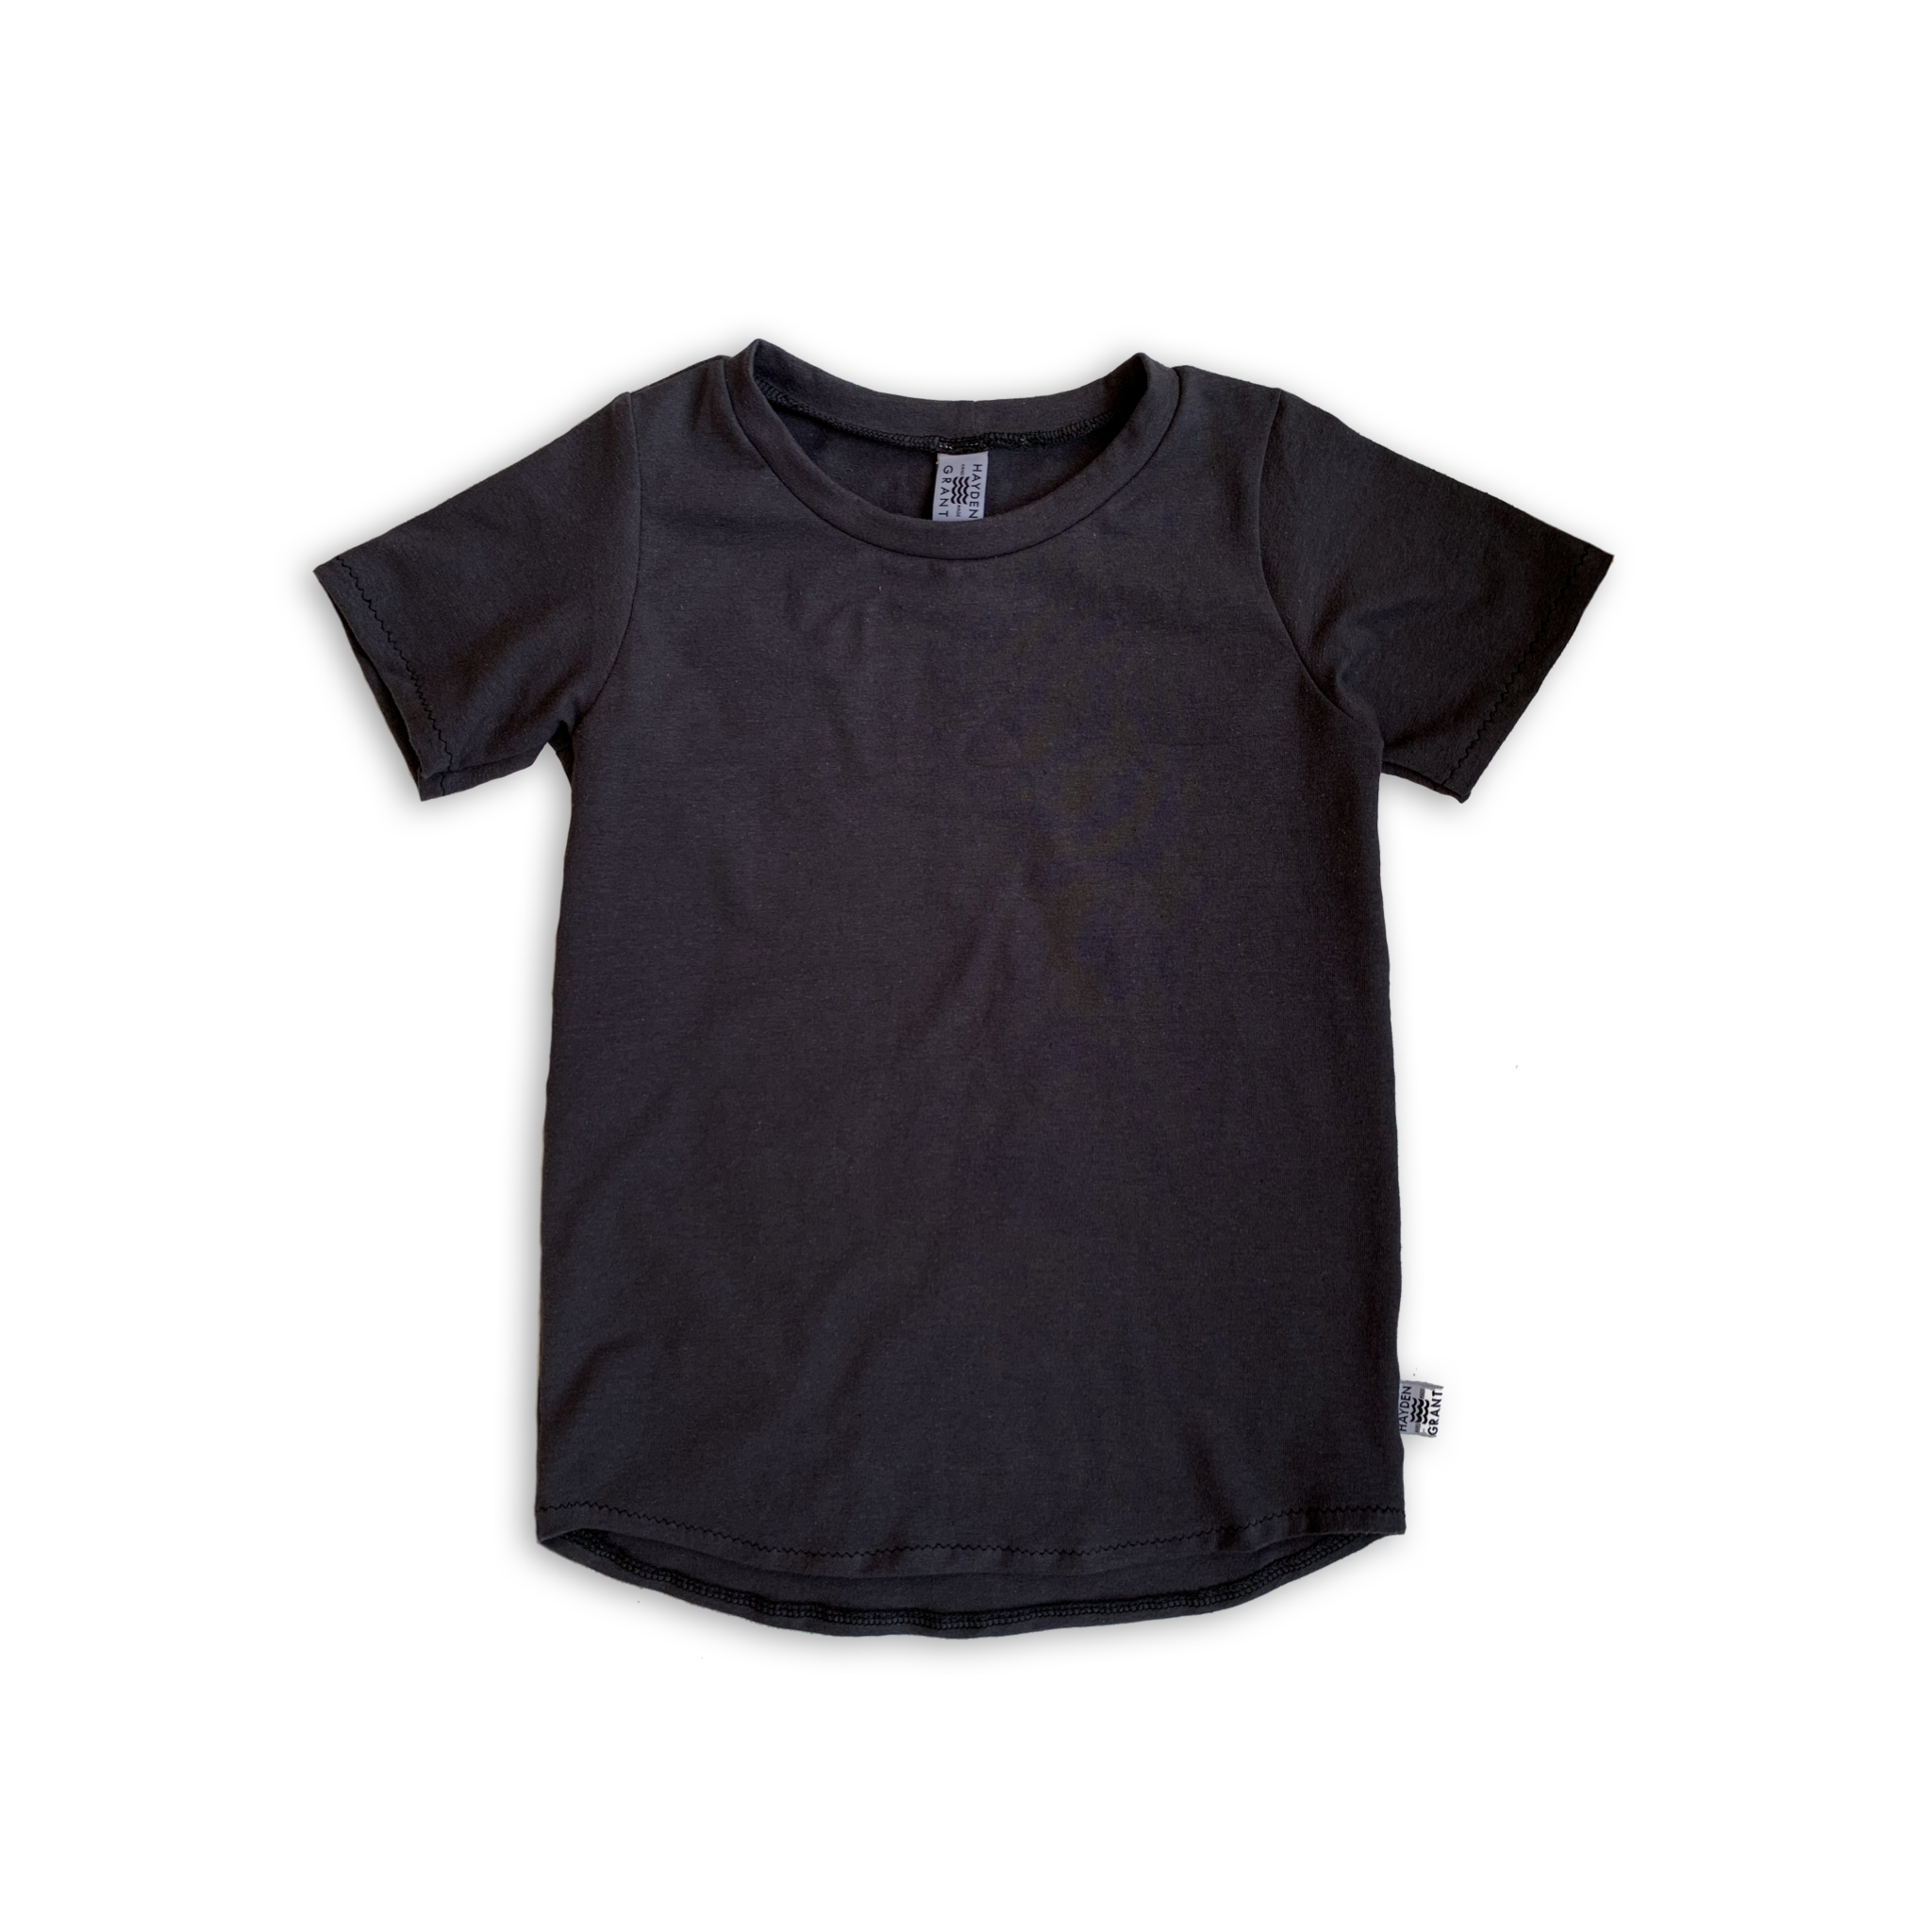 Curved Hem Tee in Solid Onyx Black (choice of sleeve length)